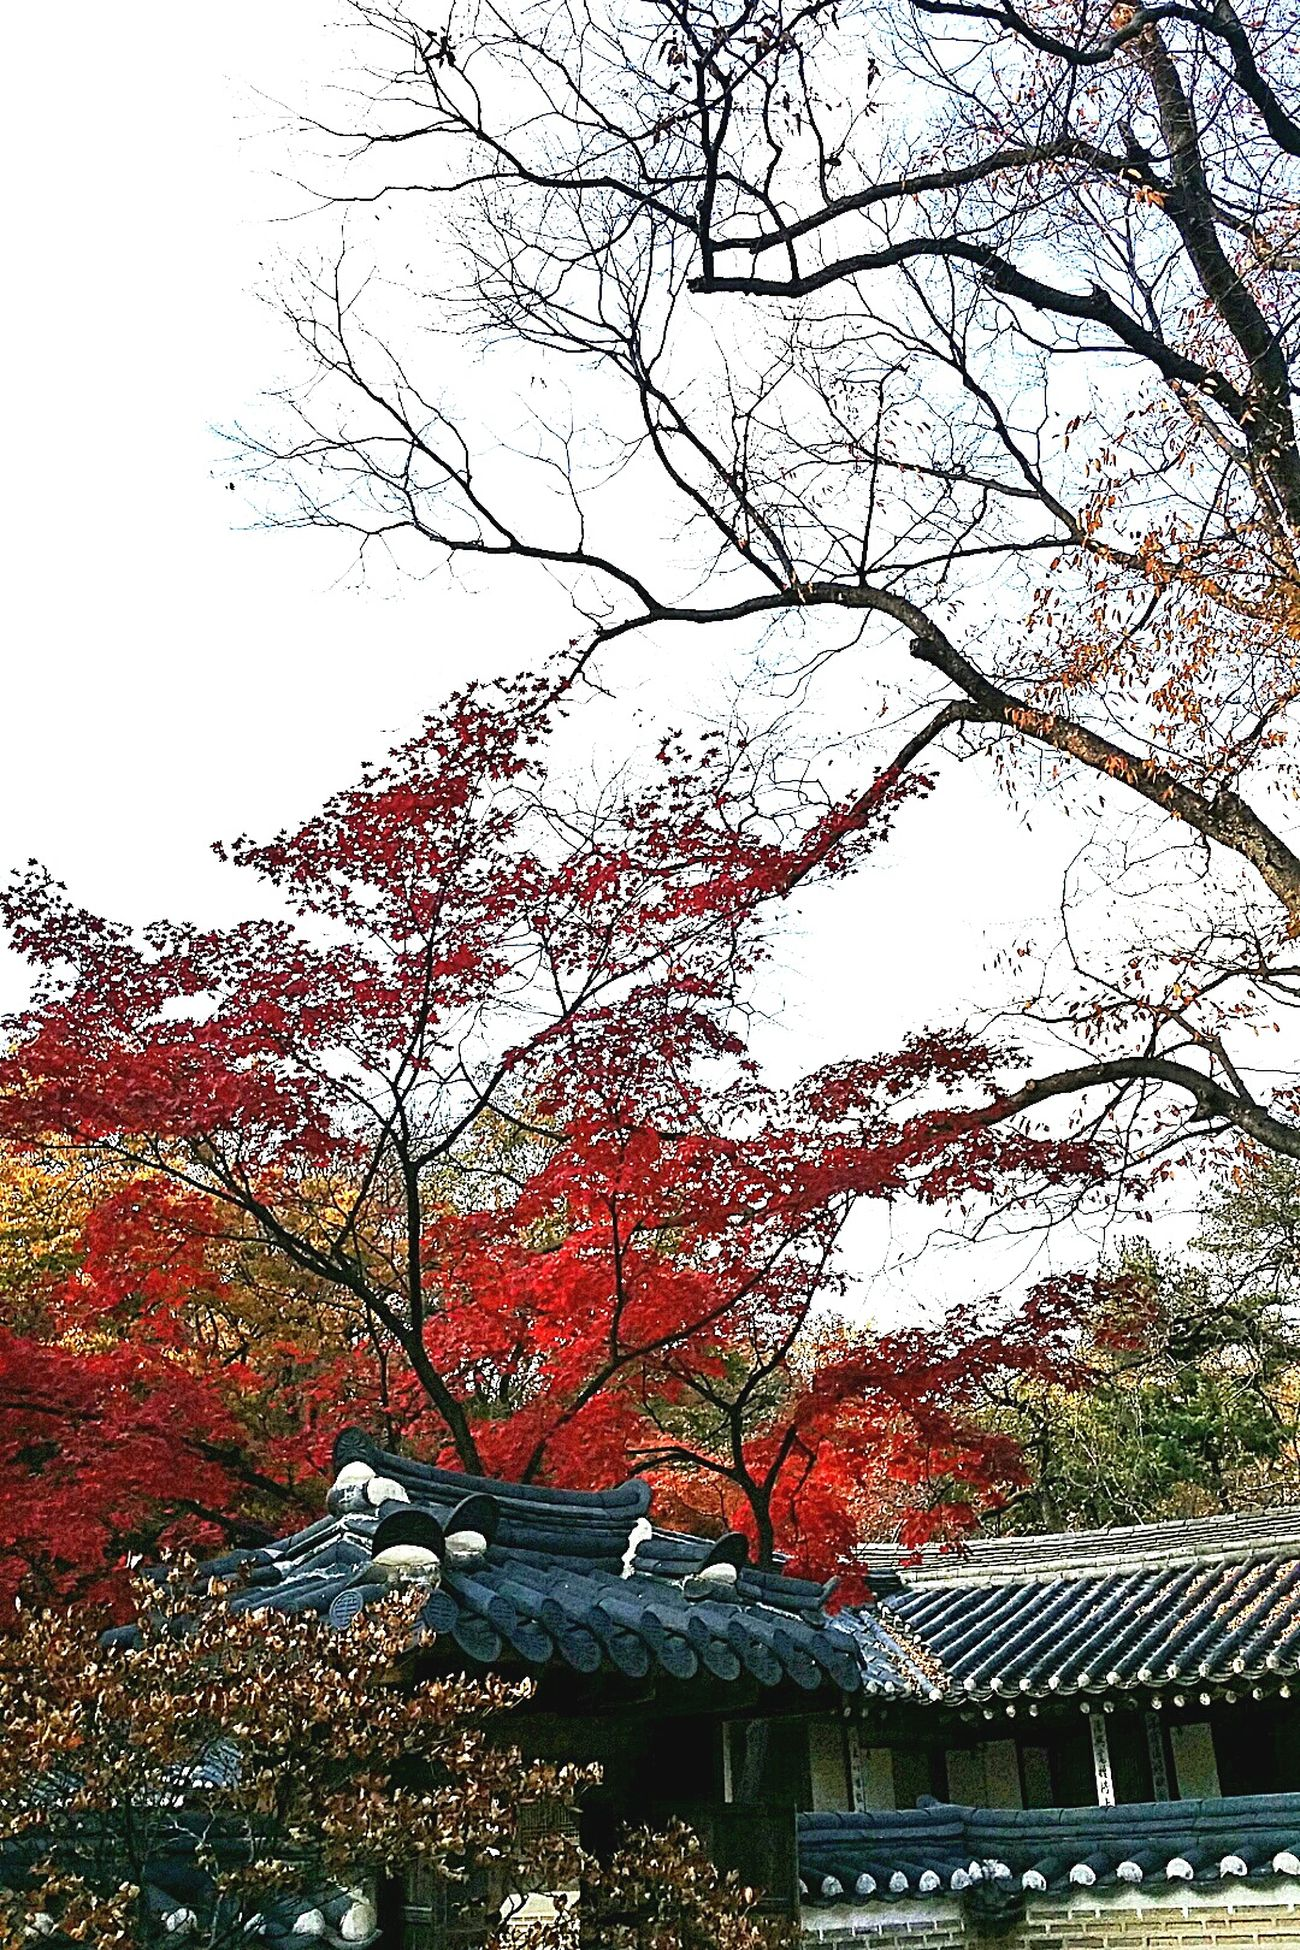 Autumn Colors Trees Seasons Seoulautumn2014 Autumn Changdeokgung Palace Seoul Korea Travel Photography Beautifulkorea